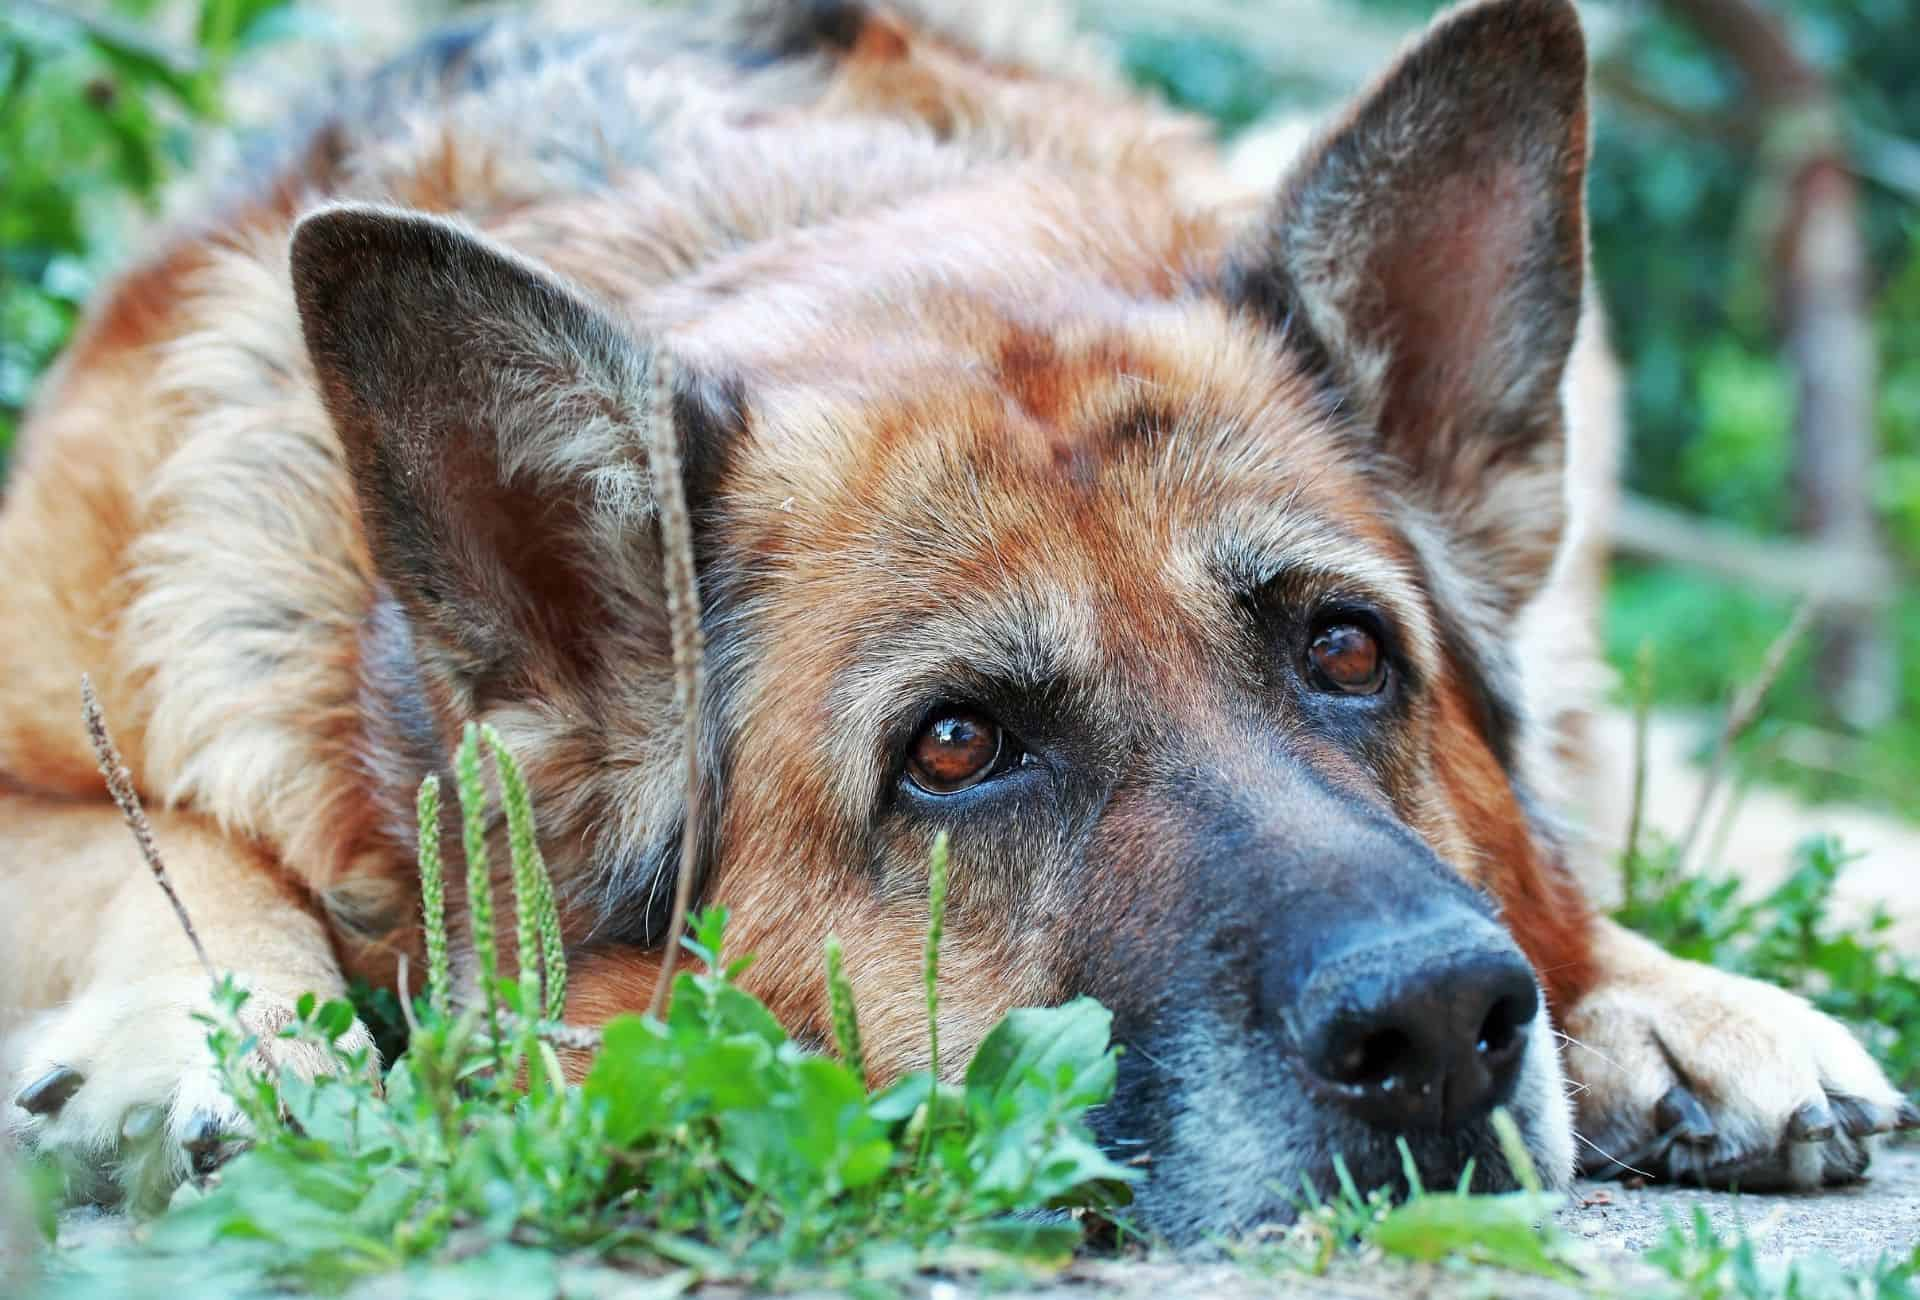 German Shepherd has his snout on the ground but his eyes are alert.